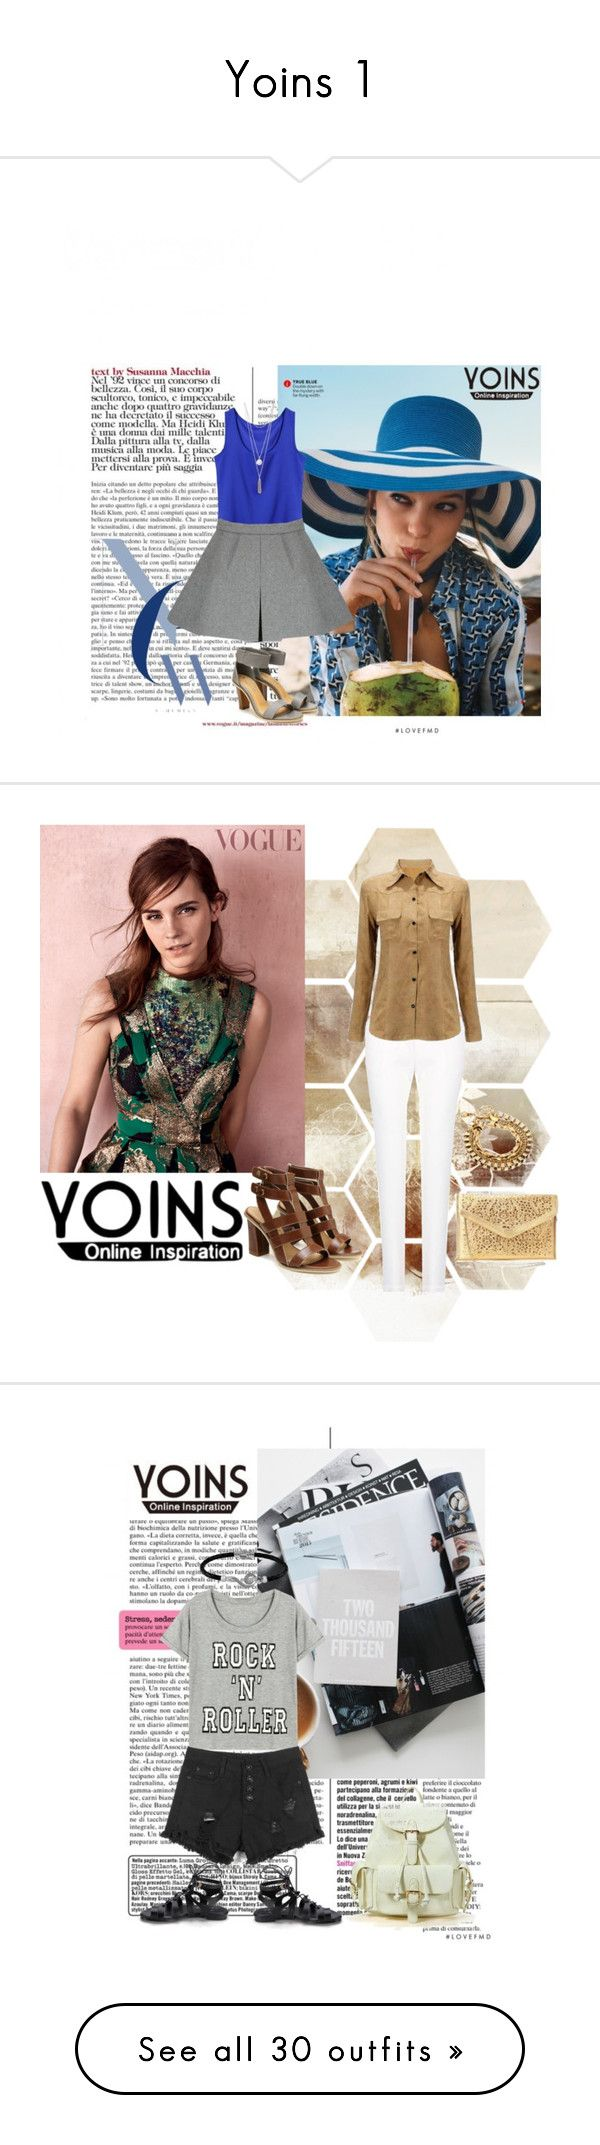 """Yoins 1"" by dijanam97 ❤ liked on Polyvore featuring yoins, Emma Watson, Jewel Exclusive, Christian Louboutin, MICHAEL Michael Kors, Disney, Hallhuber, Jennifer Zeuner, Converse and CVC Stones"